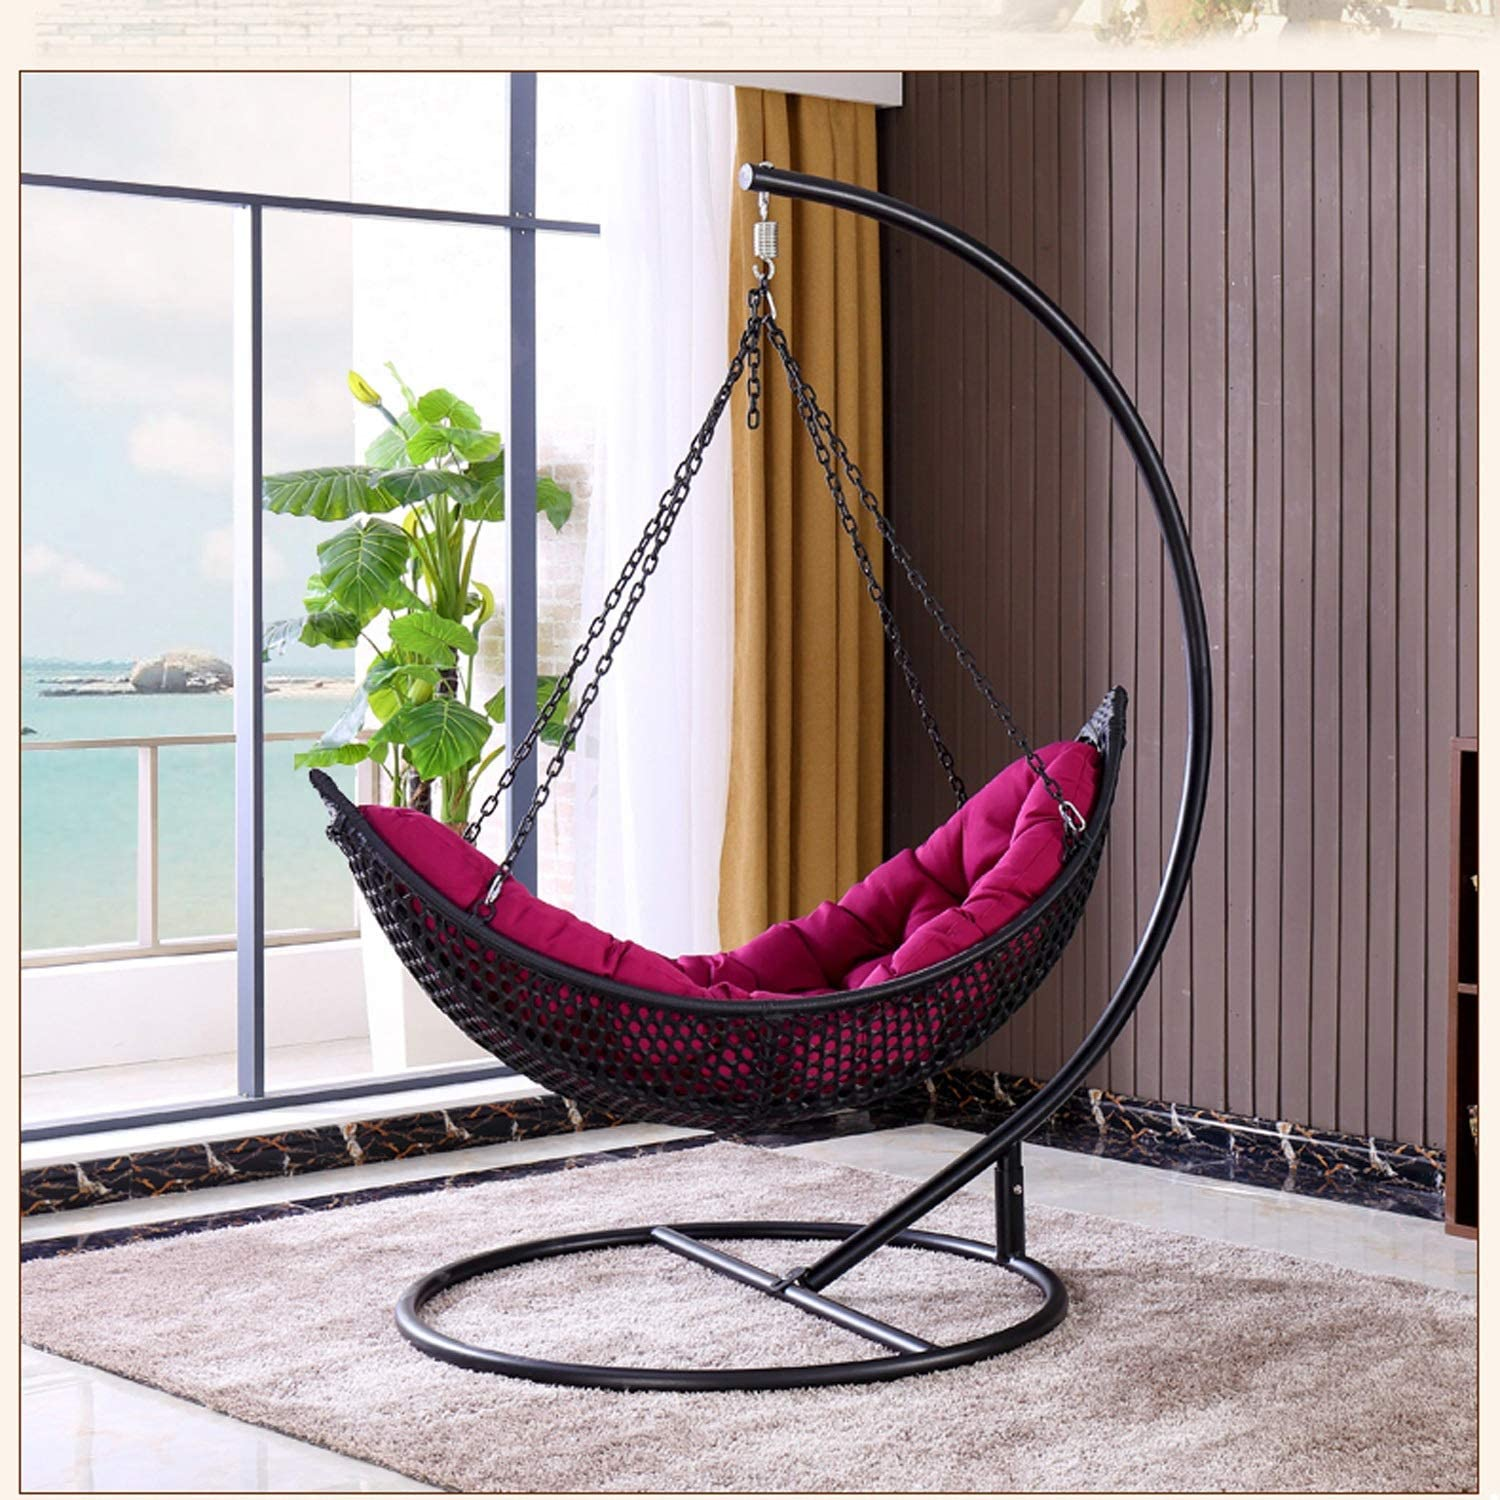 Amazon Com Hoiho Outdoor Flying Hanging Basket Chair Single Black Pe Rattan Hanging Chair To Send Cushions Home Indoor Balcony Swing Seat Chair Load 130kg Garden Outdoor